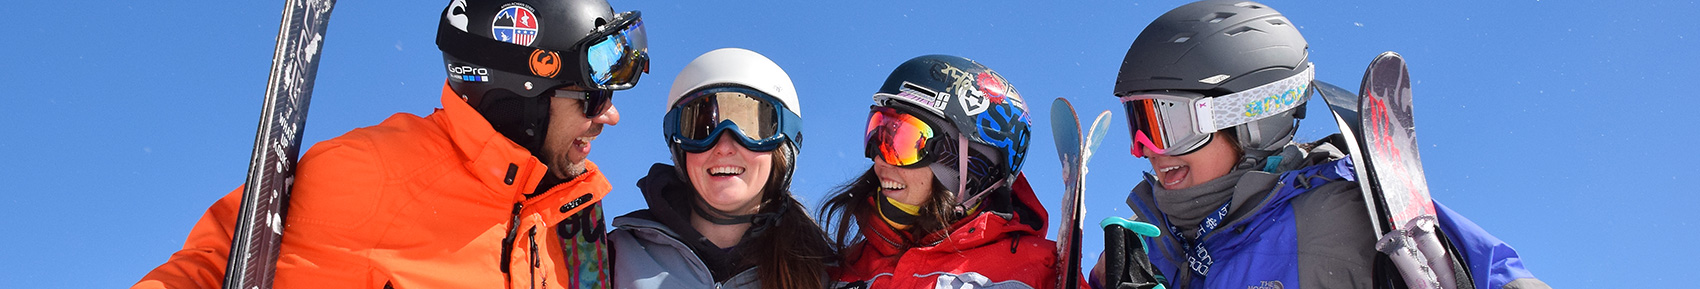 Smiling skiers and snowboarders